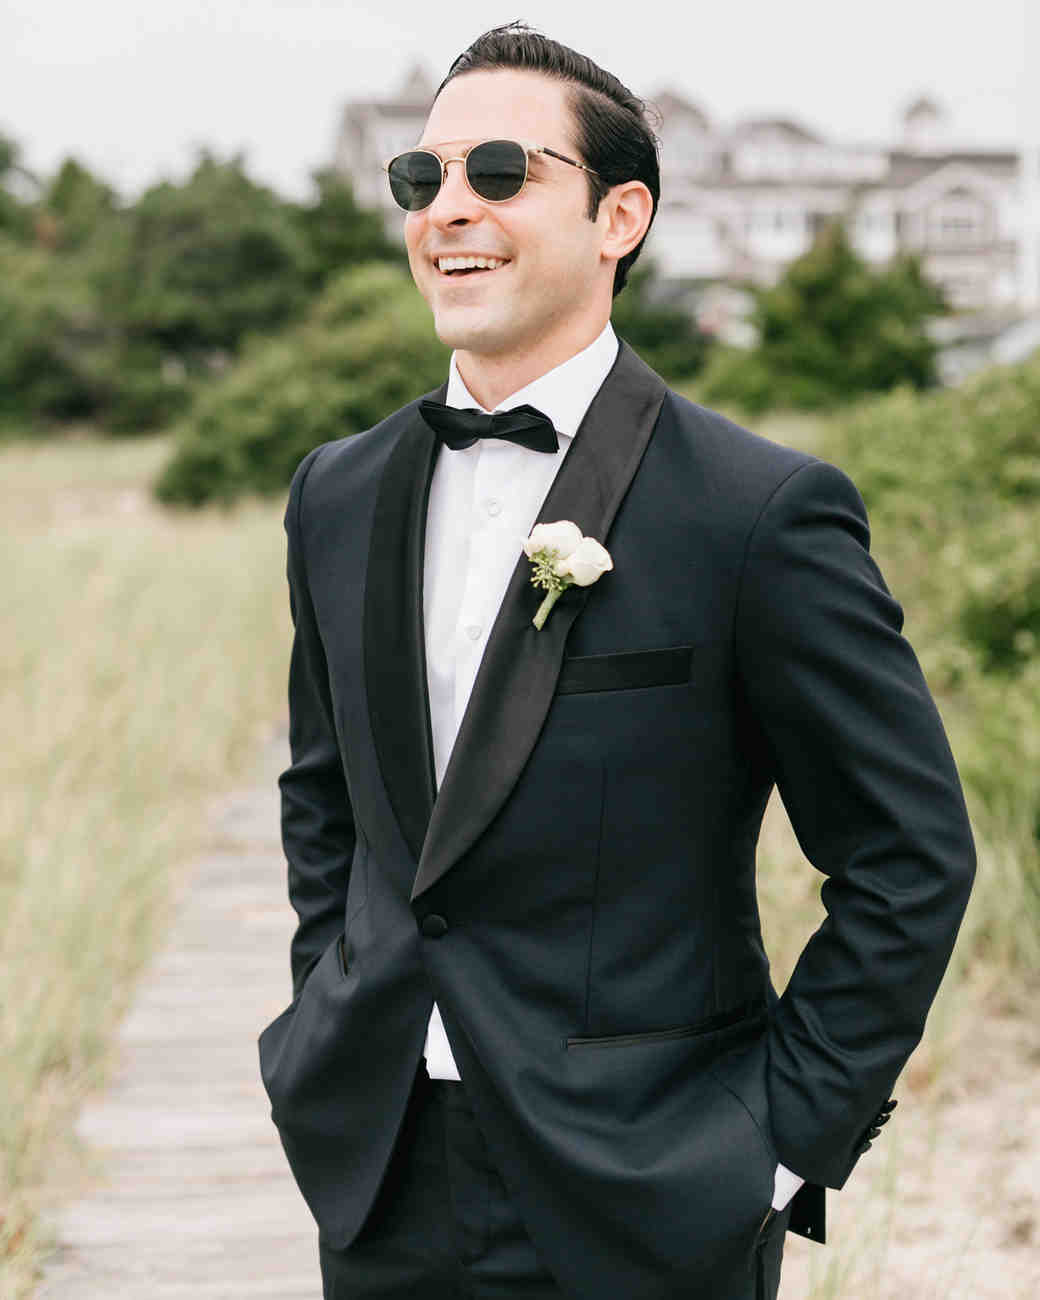 groom wearing sunglasses smiling